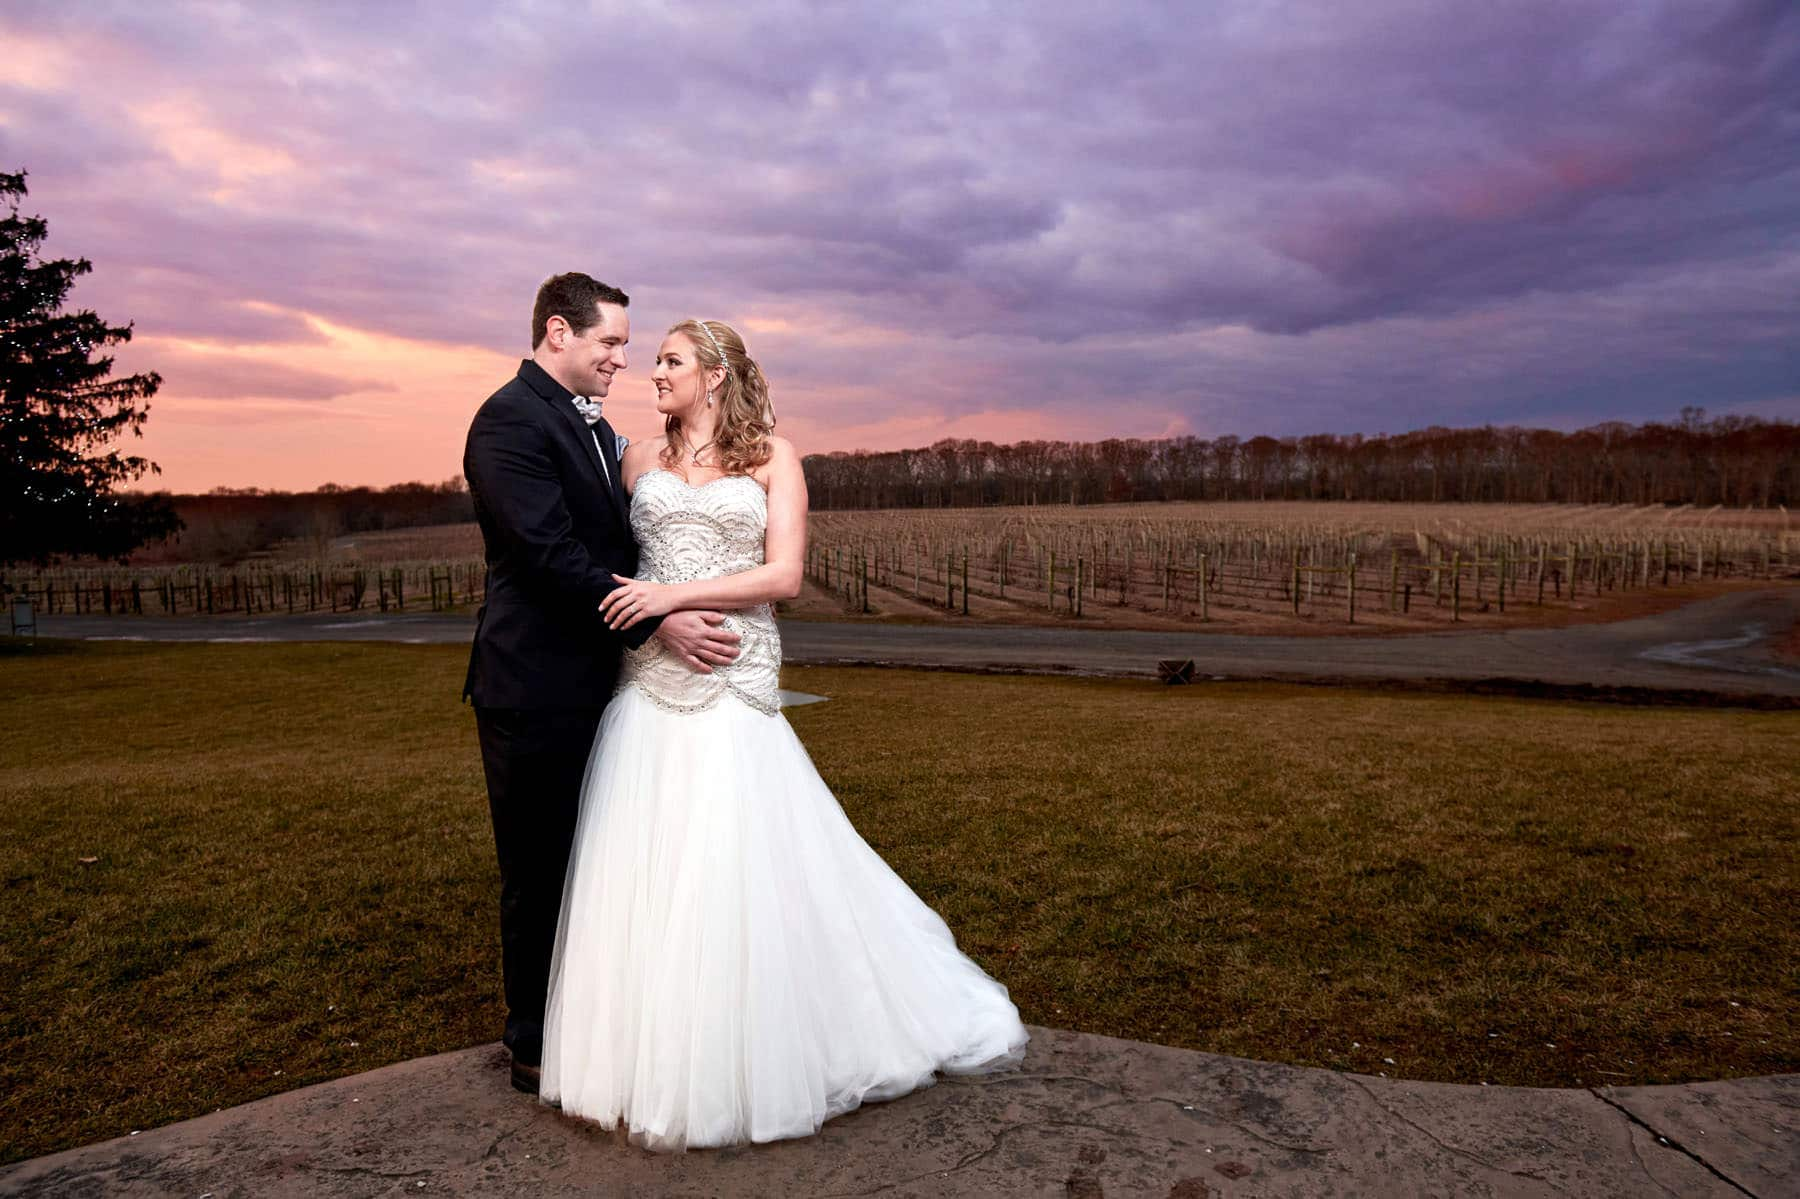 sunset wedding photo at laurita winery